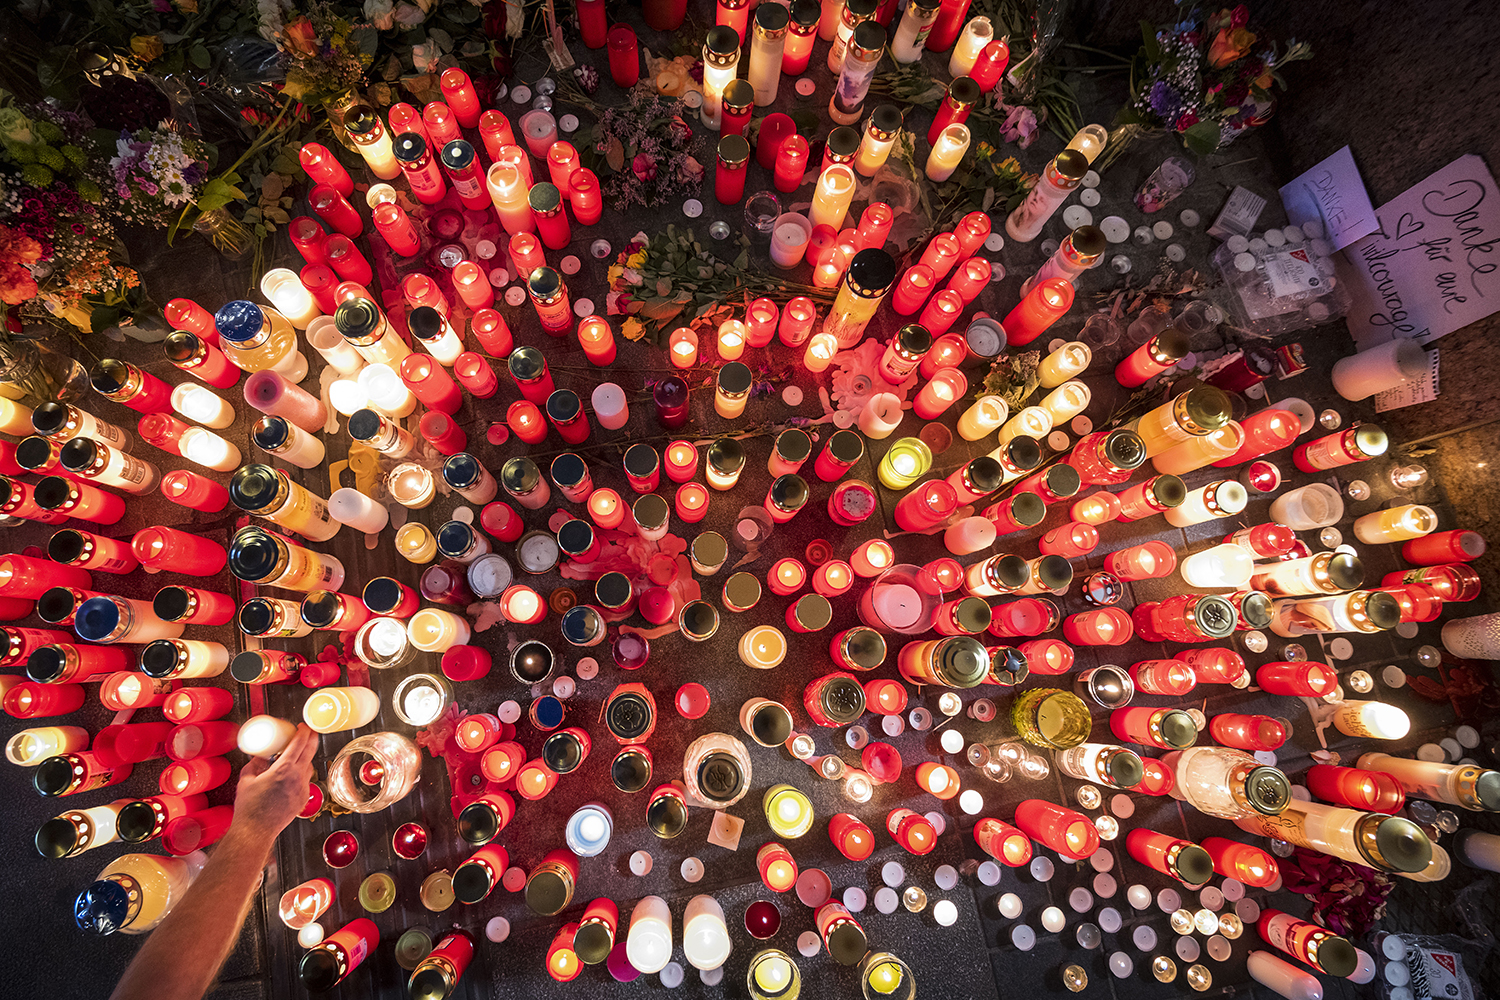 Candles lit after fatal attack in Germany